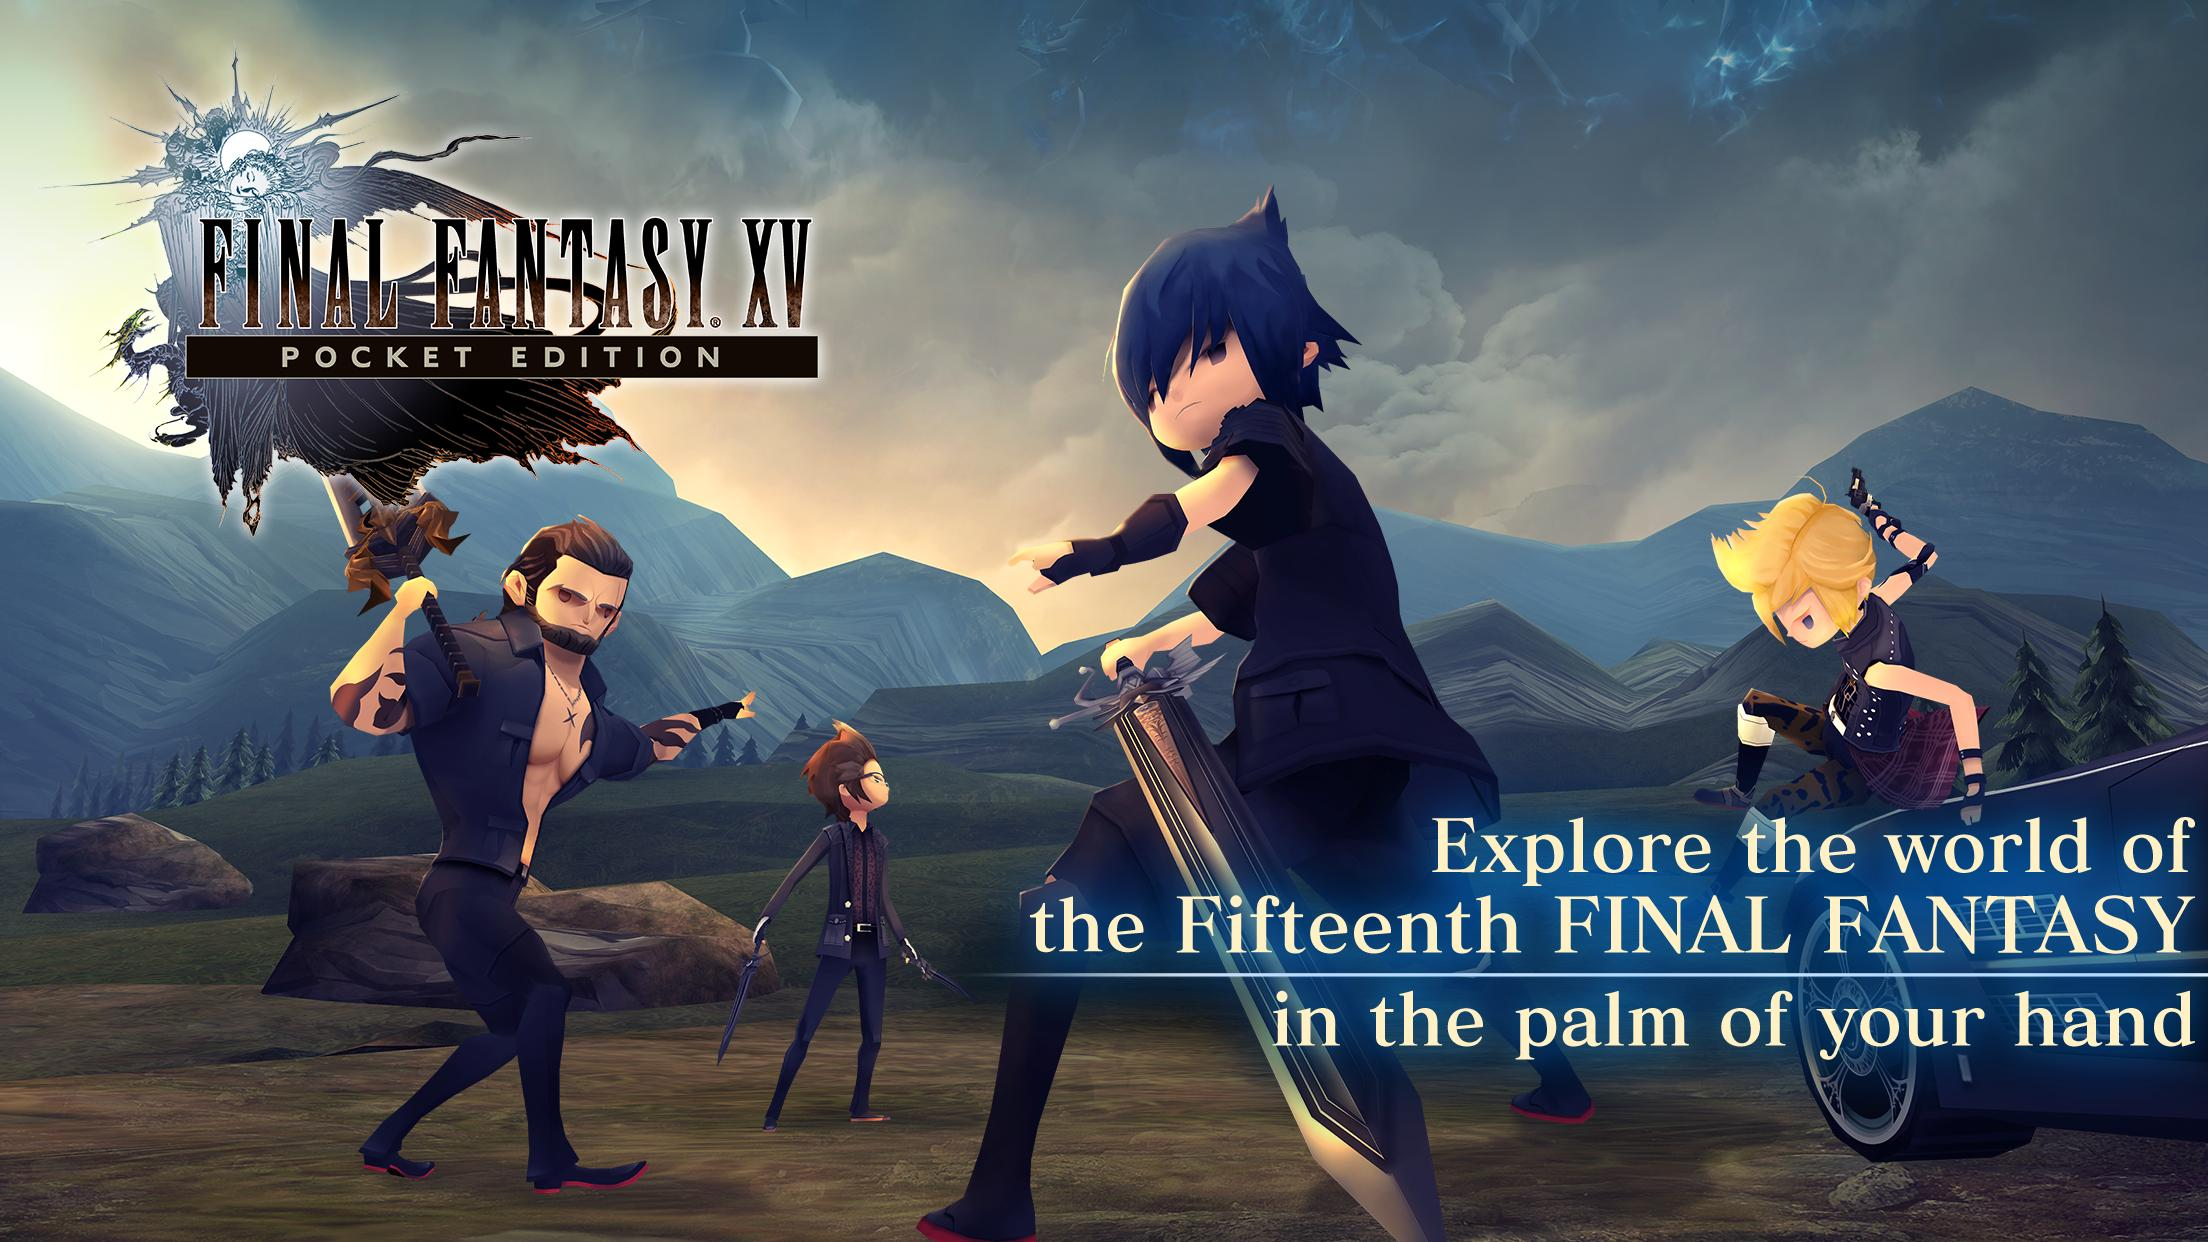 FINAL FANTASY XV POCKET EDITION 1.0.6.631 Screenshot 6